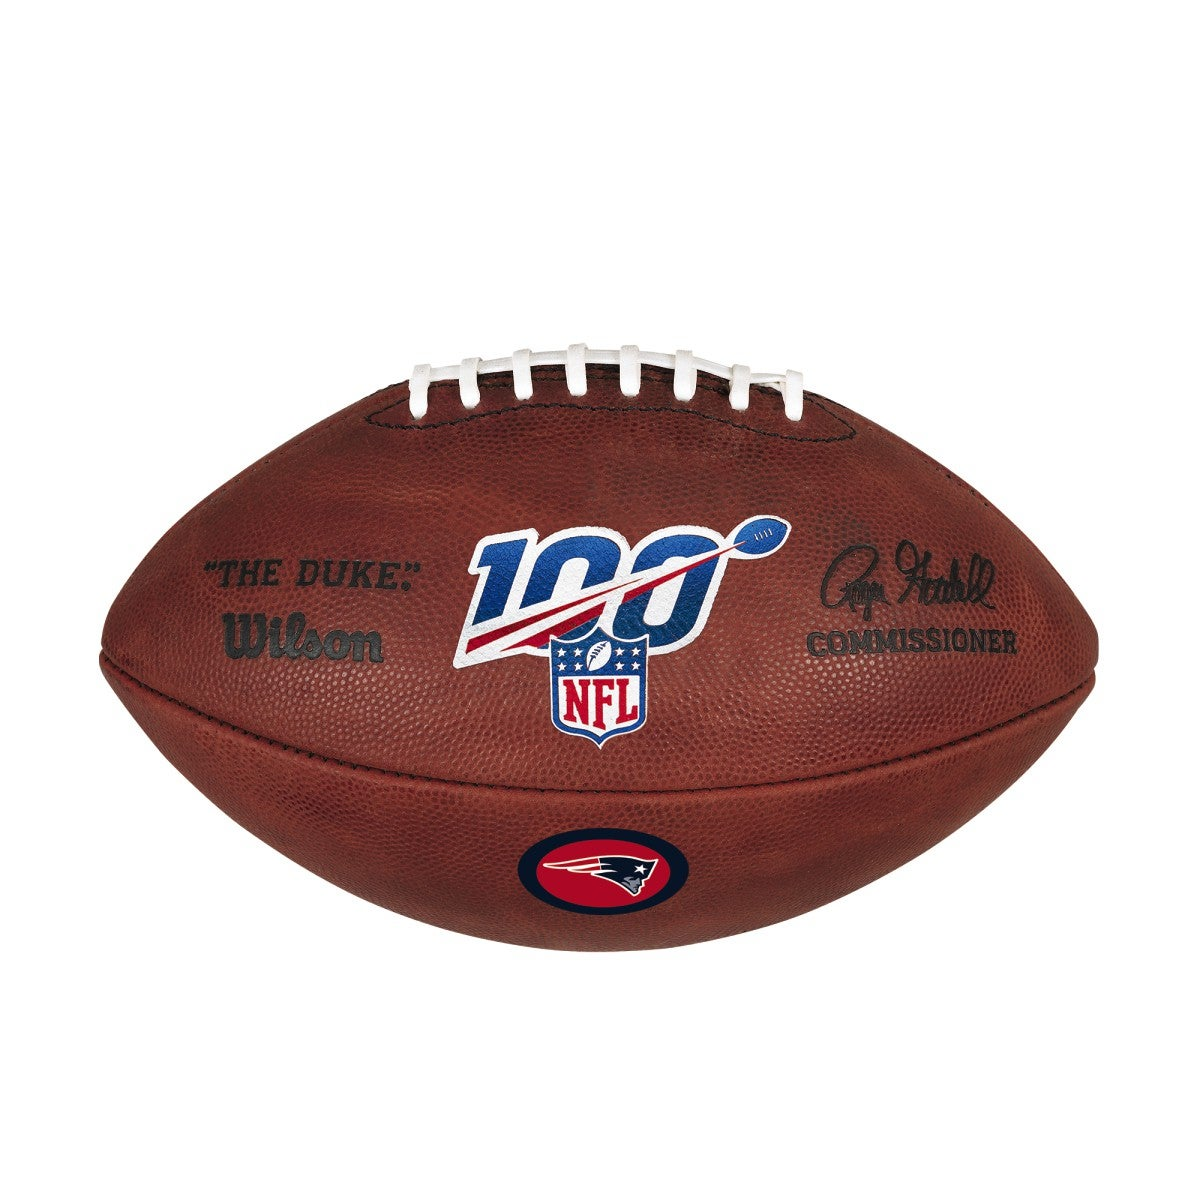 NFL 100 THE DUKE DECAL NFL FOOTBALL - NEW ENGLAND PATRIOTS